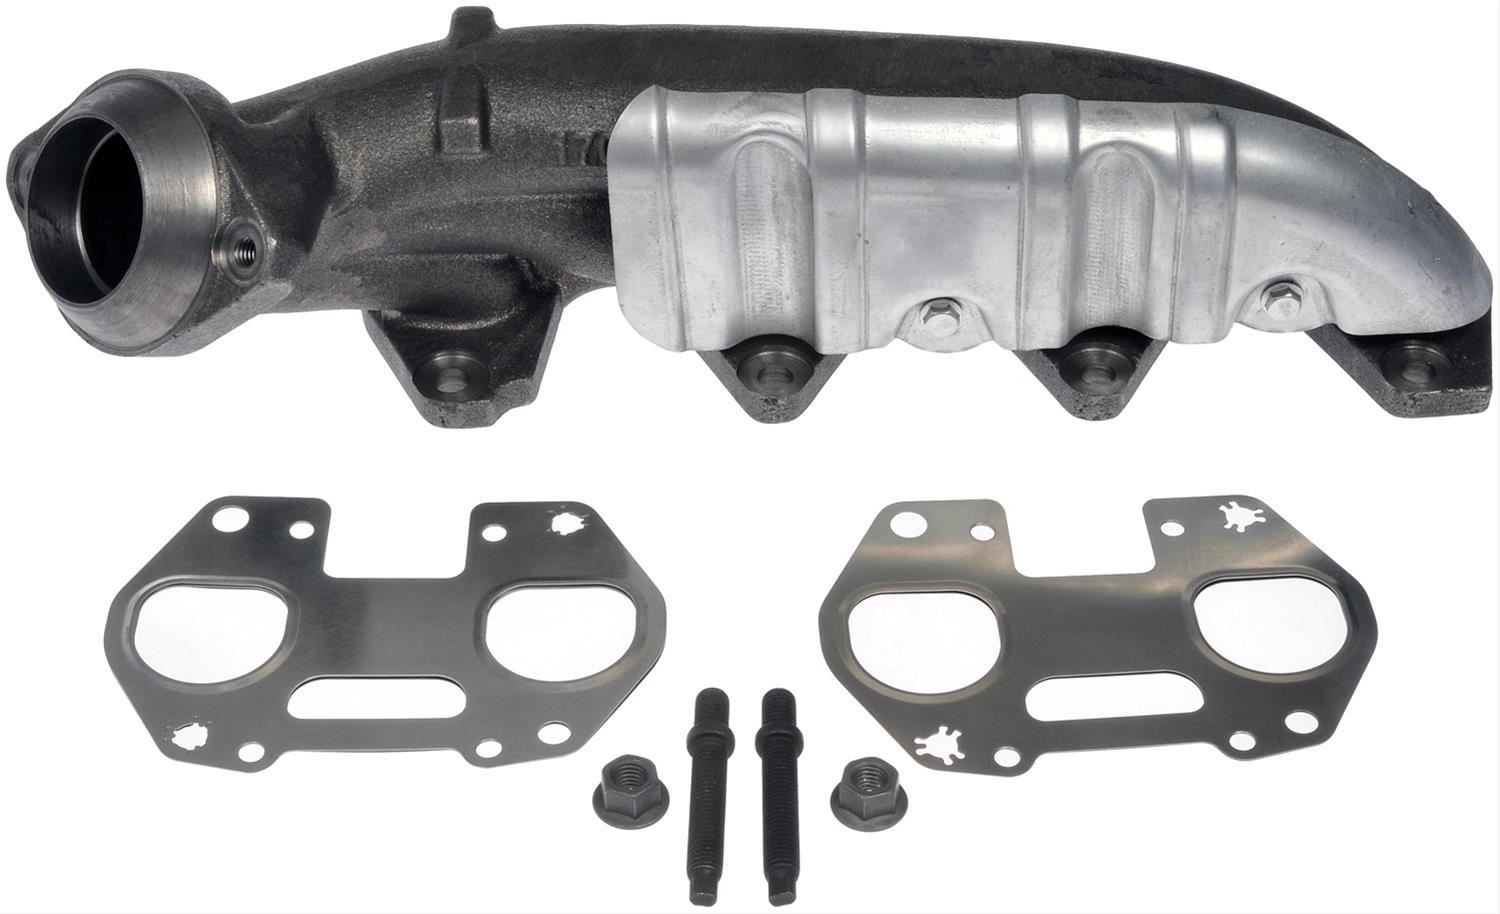 Dorman Exhaust Manifolds 674-697 - Free Shipping on Orders Over $99 at  Summit Racing